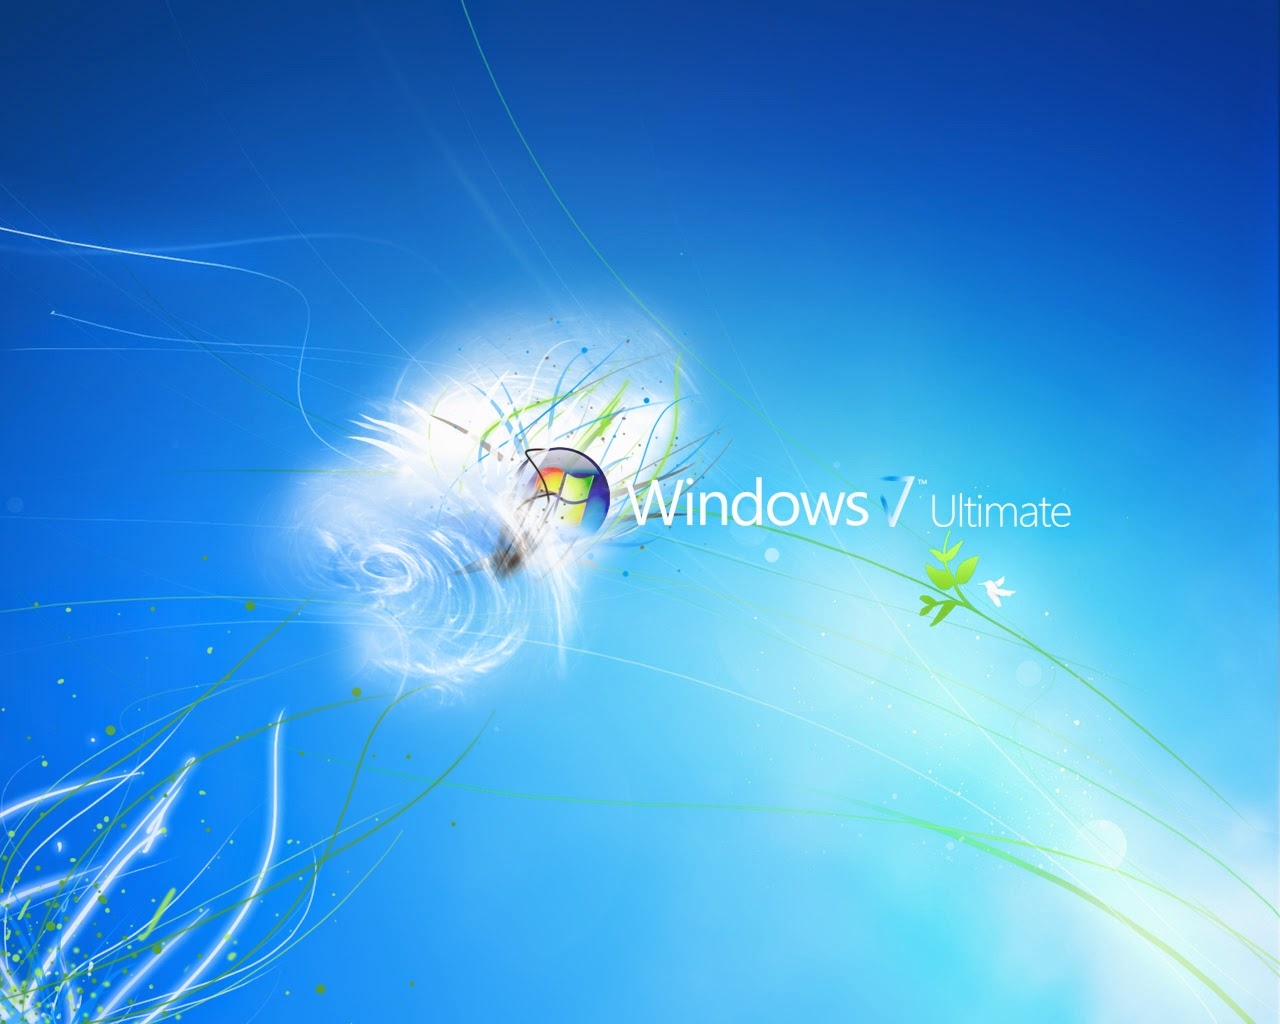 Windows 7 Product Start Screen